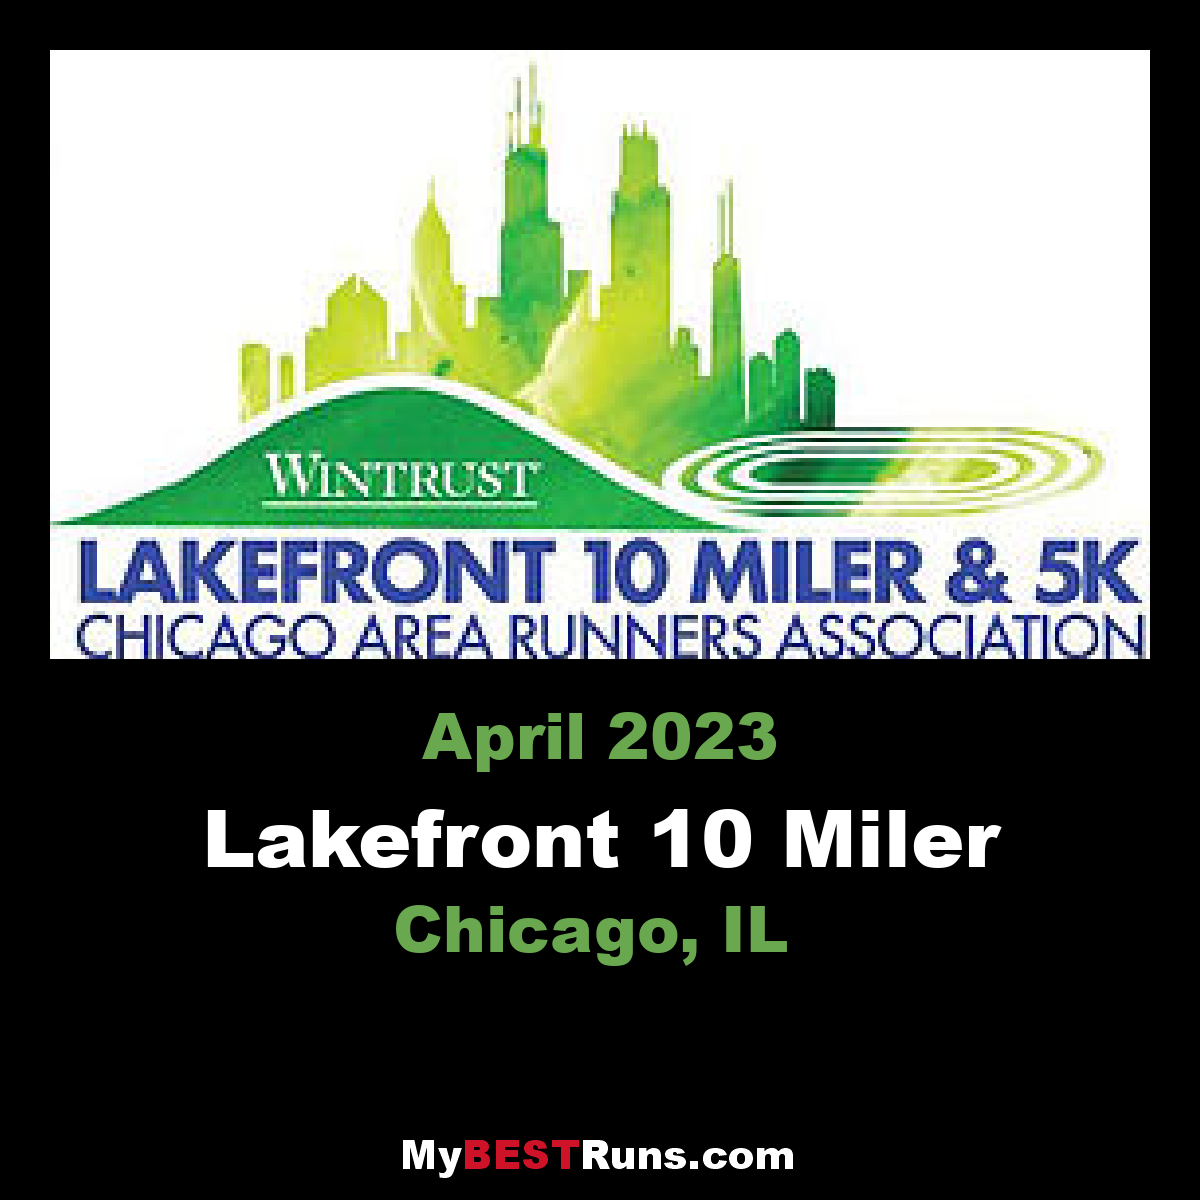 Lakefront 10 Miler - Chicago, IL - 4/18/2020 - My BEST Runs - Worlds